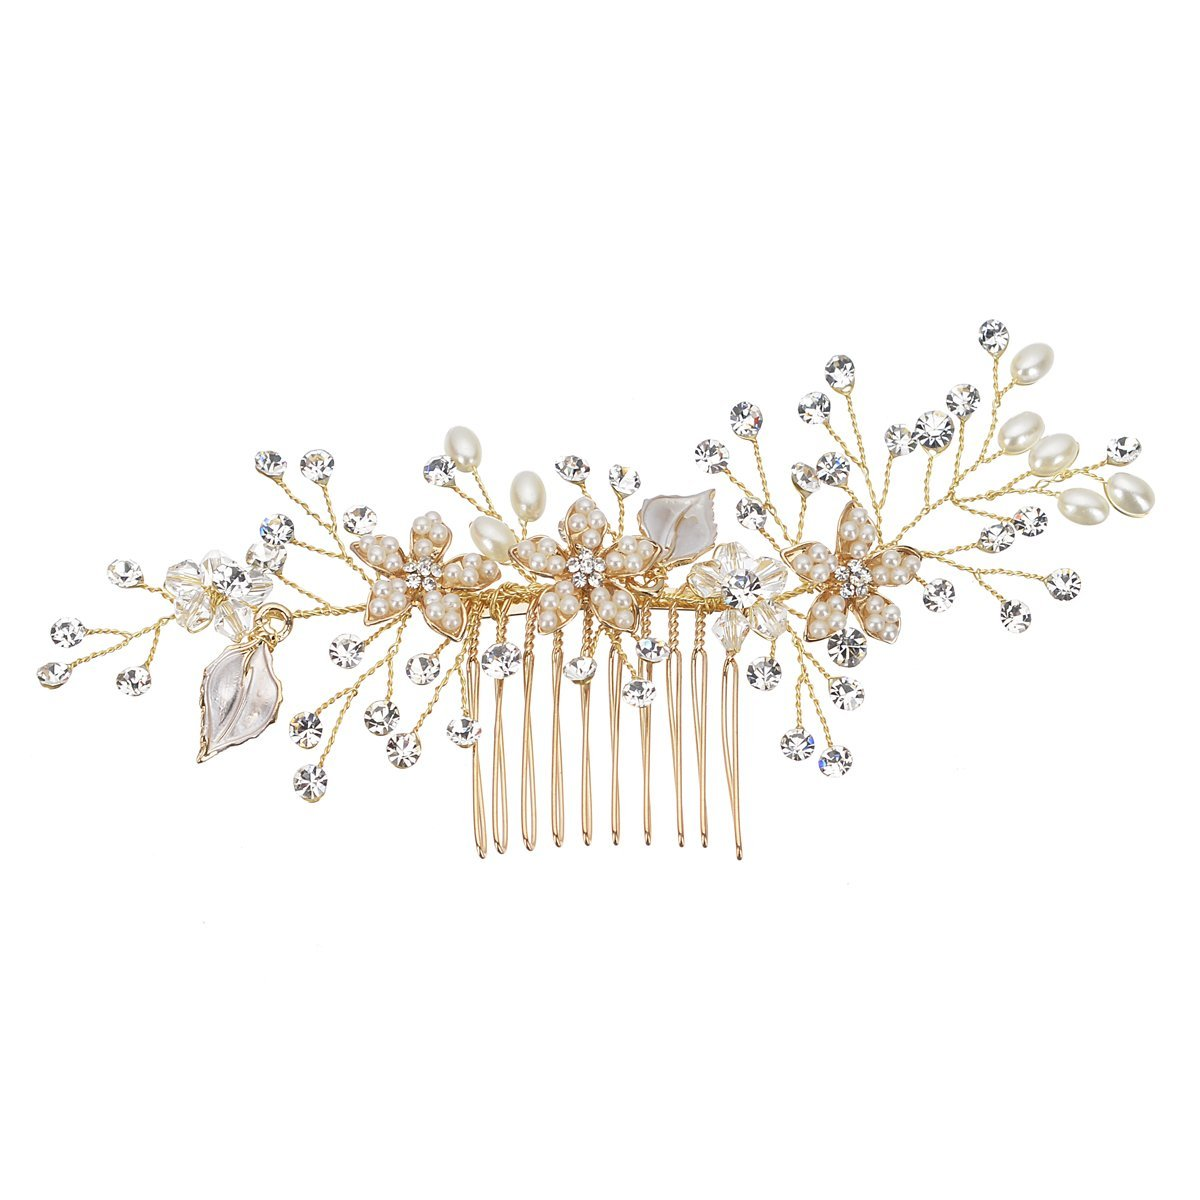 Remedios Vintage Flower Leaf Inspiration Wedding Hair Comb Bridal Headpiece, Silver LWCAFS1609C12